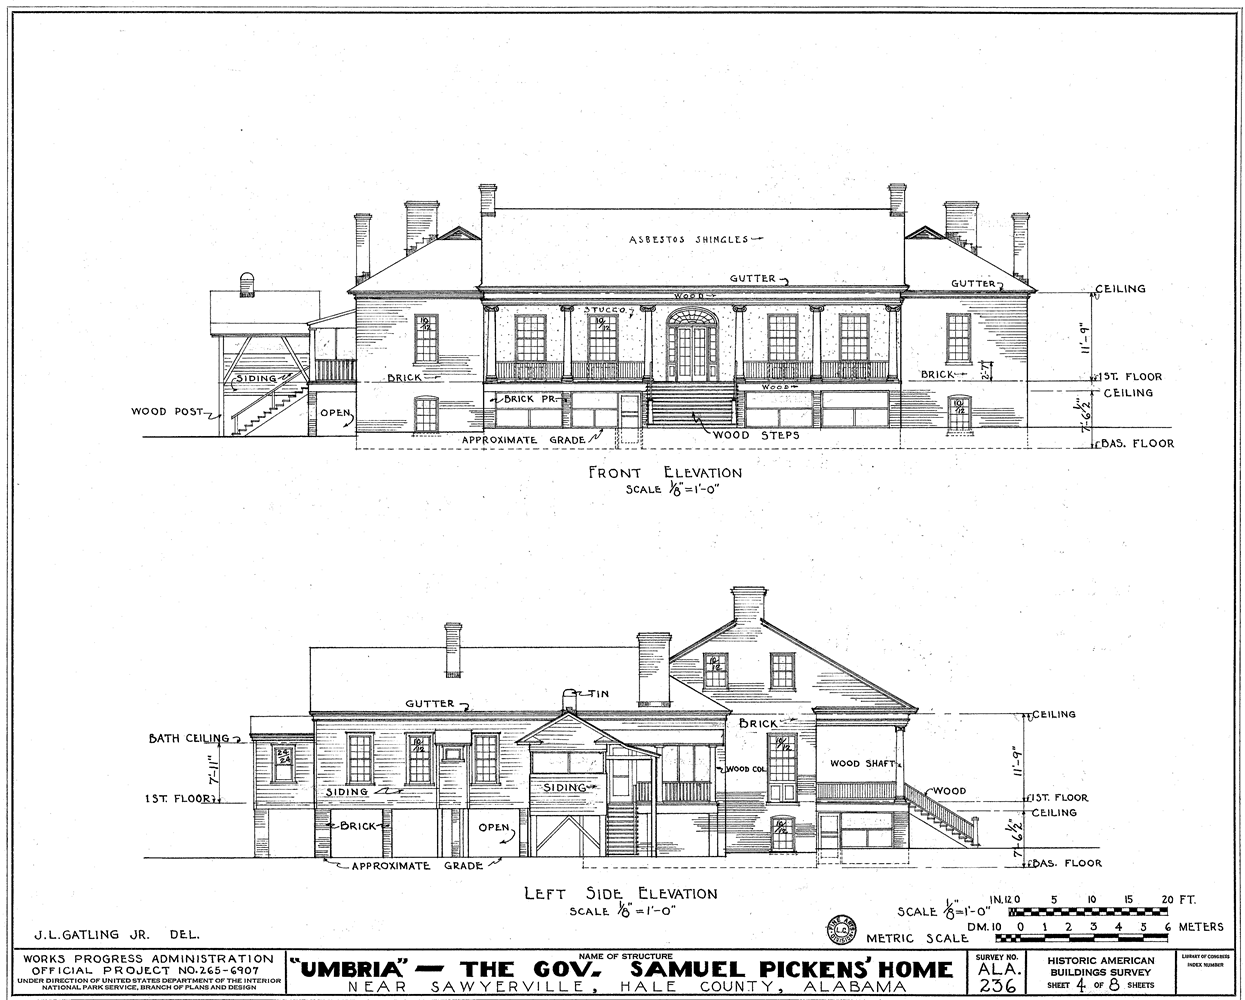 Simple Front Elevation Drawing : File umbria plantation architectural drawing of front